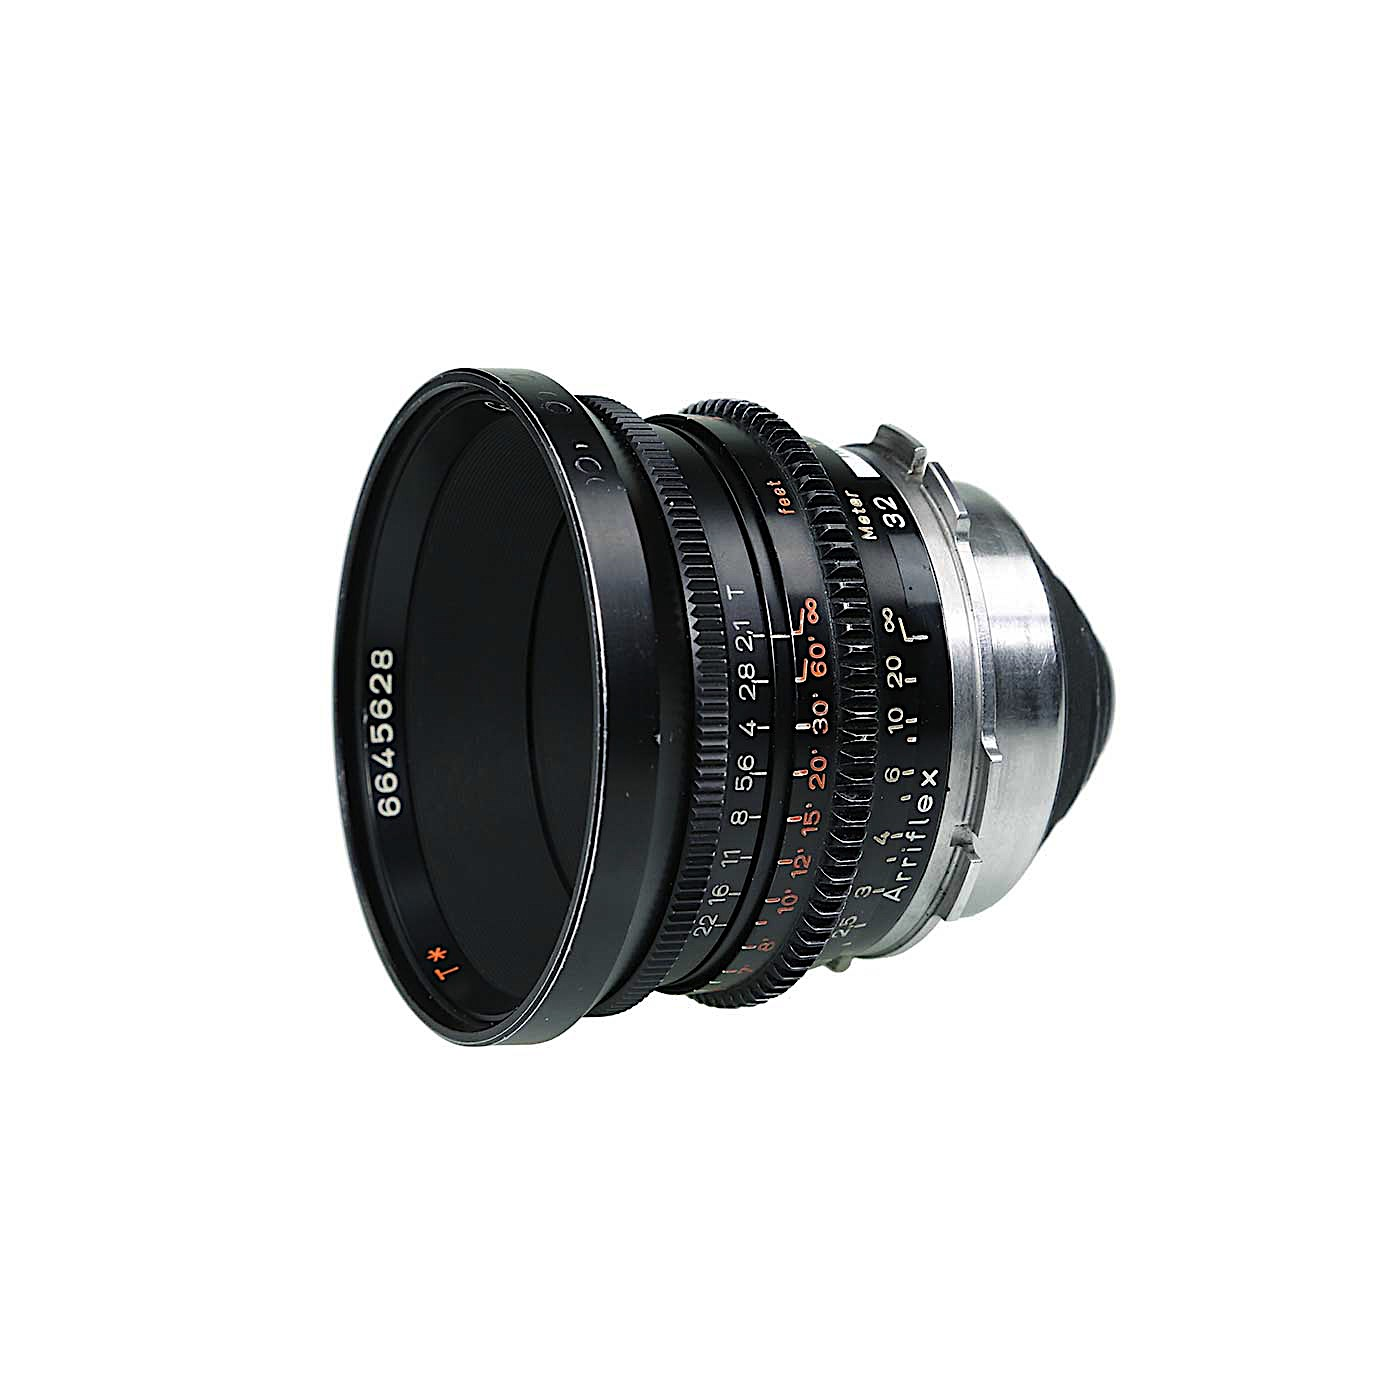 Zeiss 32mm T2.1 PL (Standard) Close Focus Prime Lens